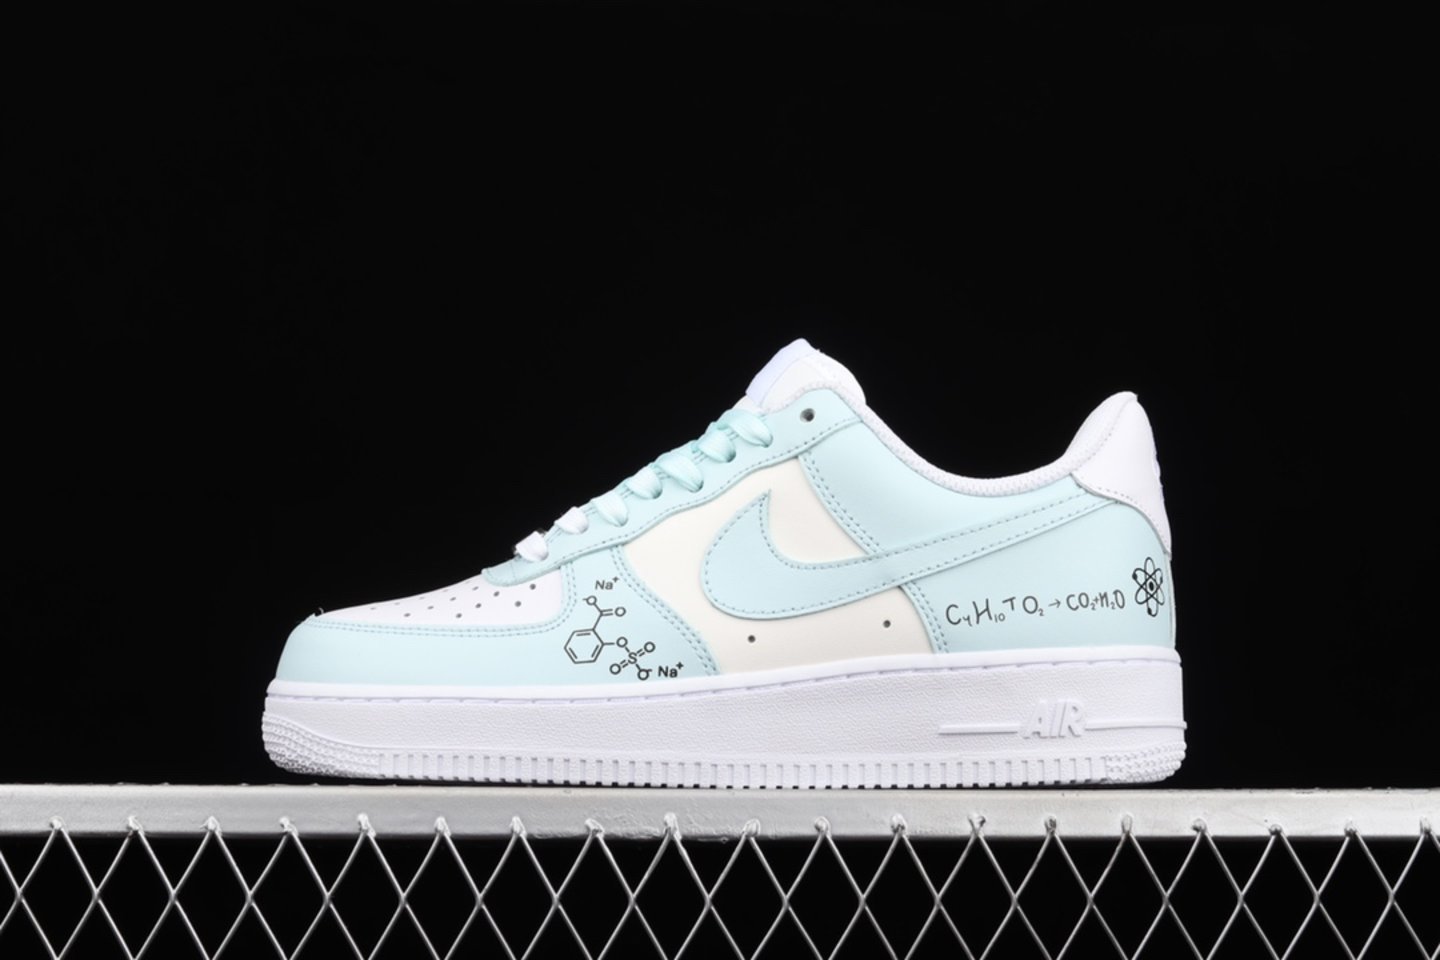 New Arrival Nike Air Force 1 Low 07 Beige White Light Green Sale CW2288-303